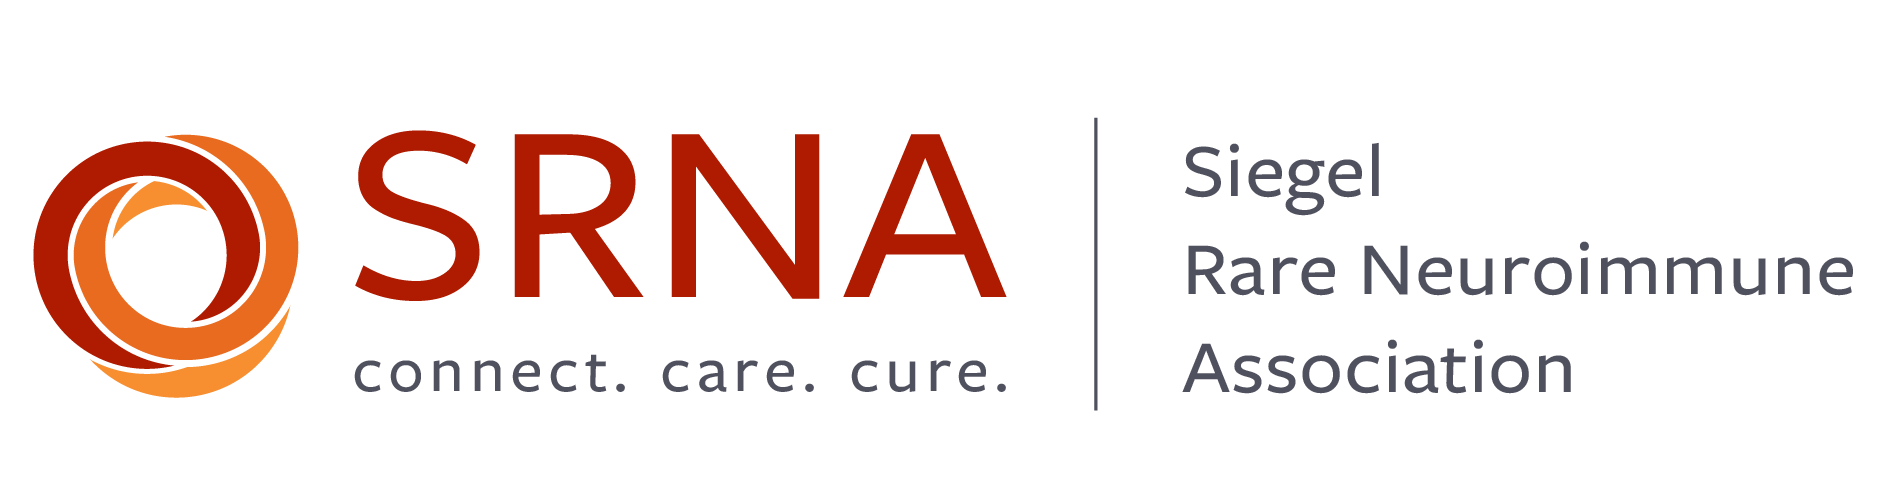 SRNA_Logo_Full